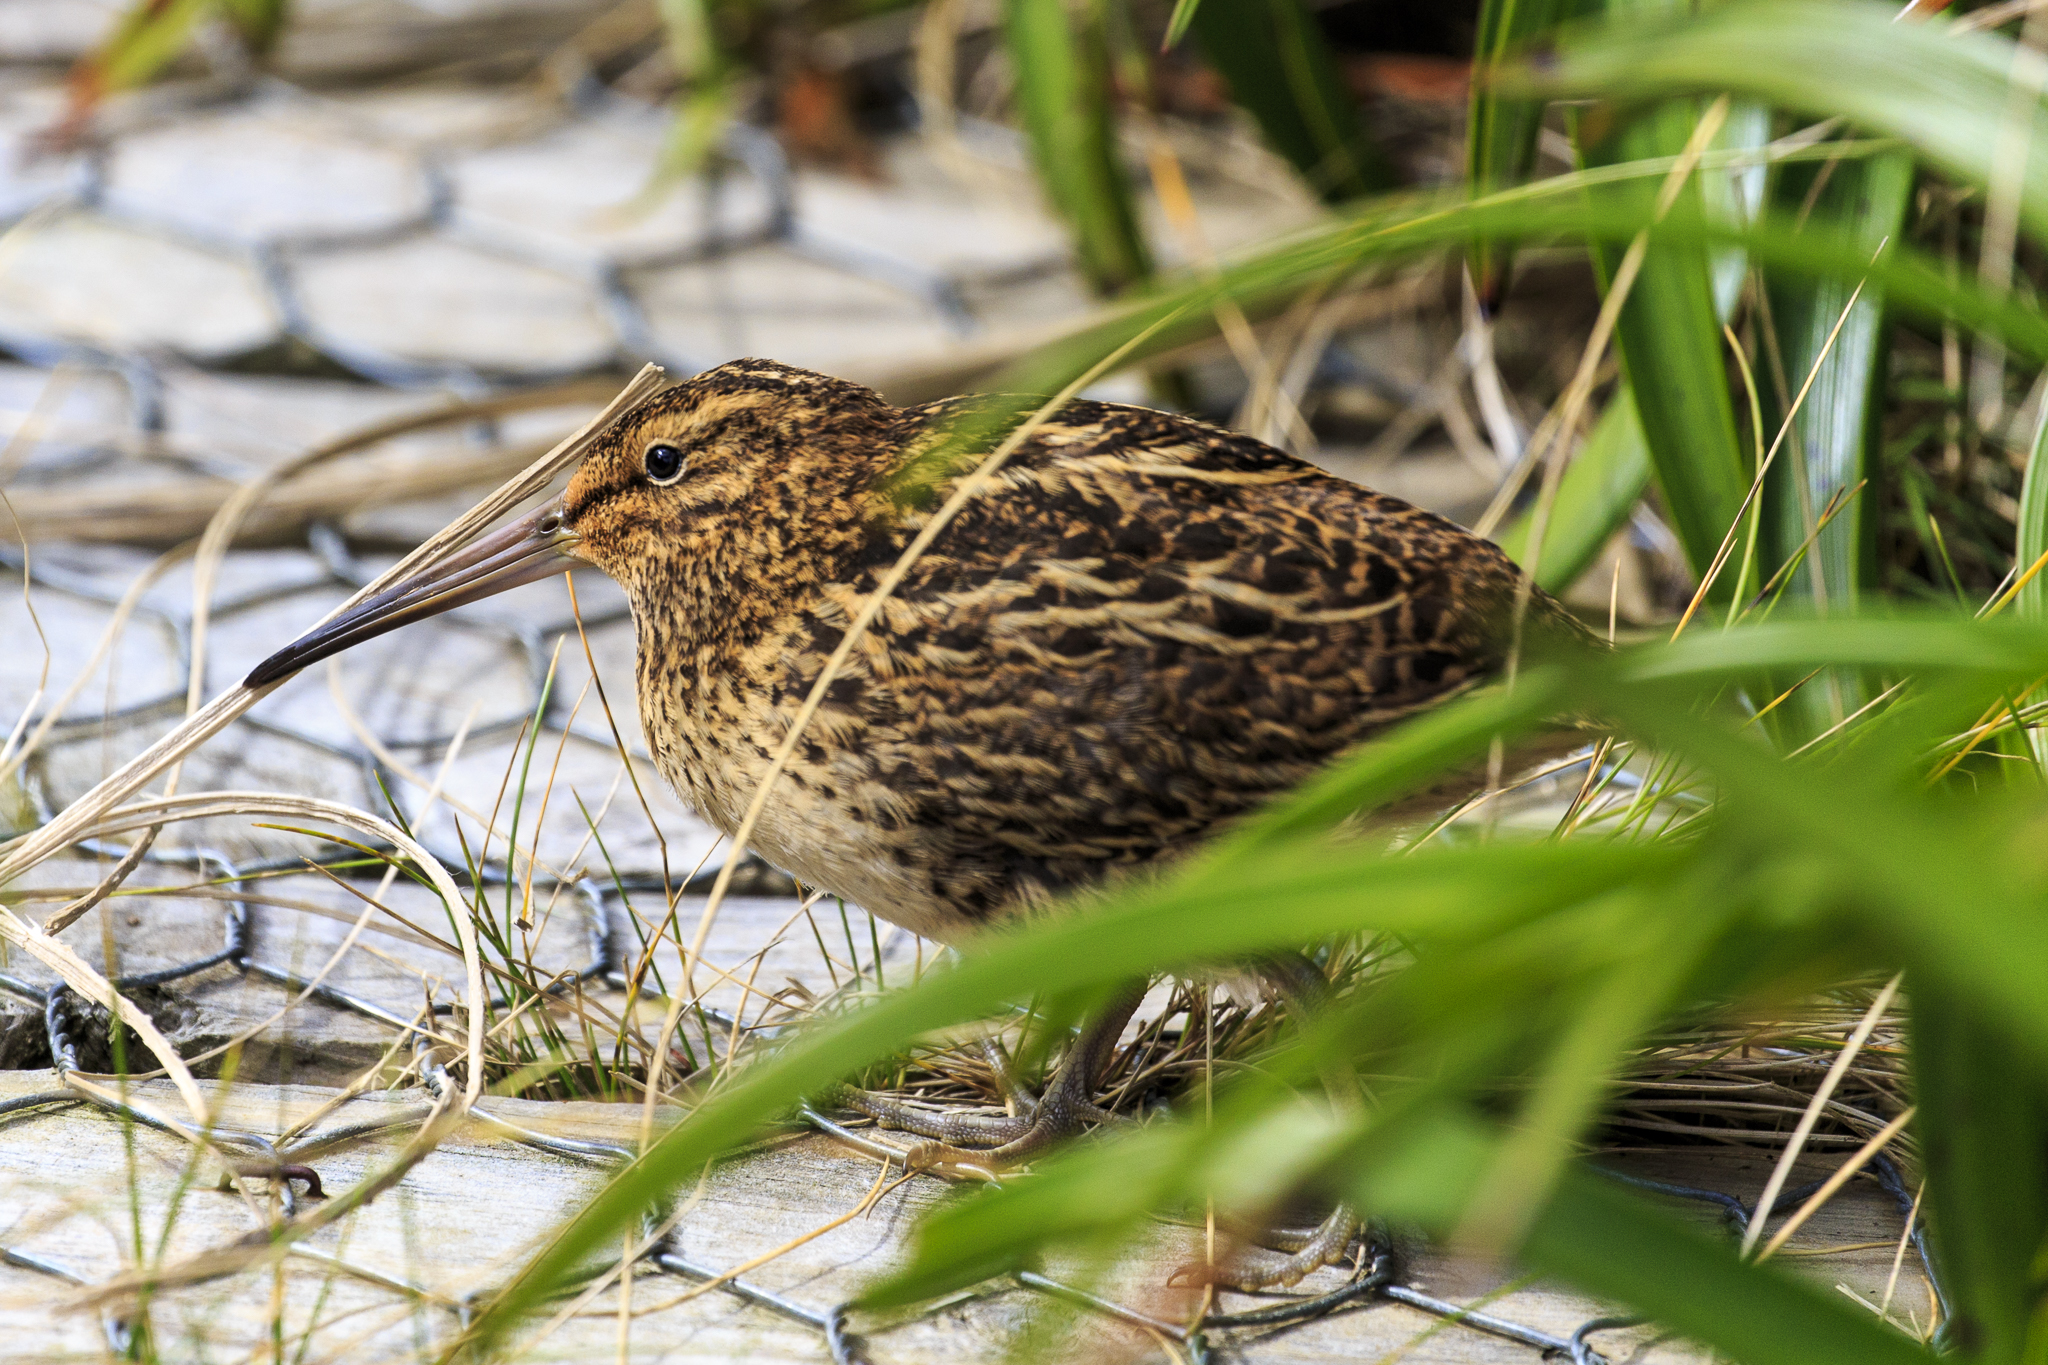 Campbell Island Snipe (just in case you were wondering)